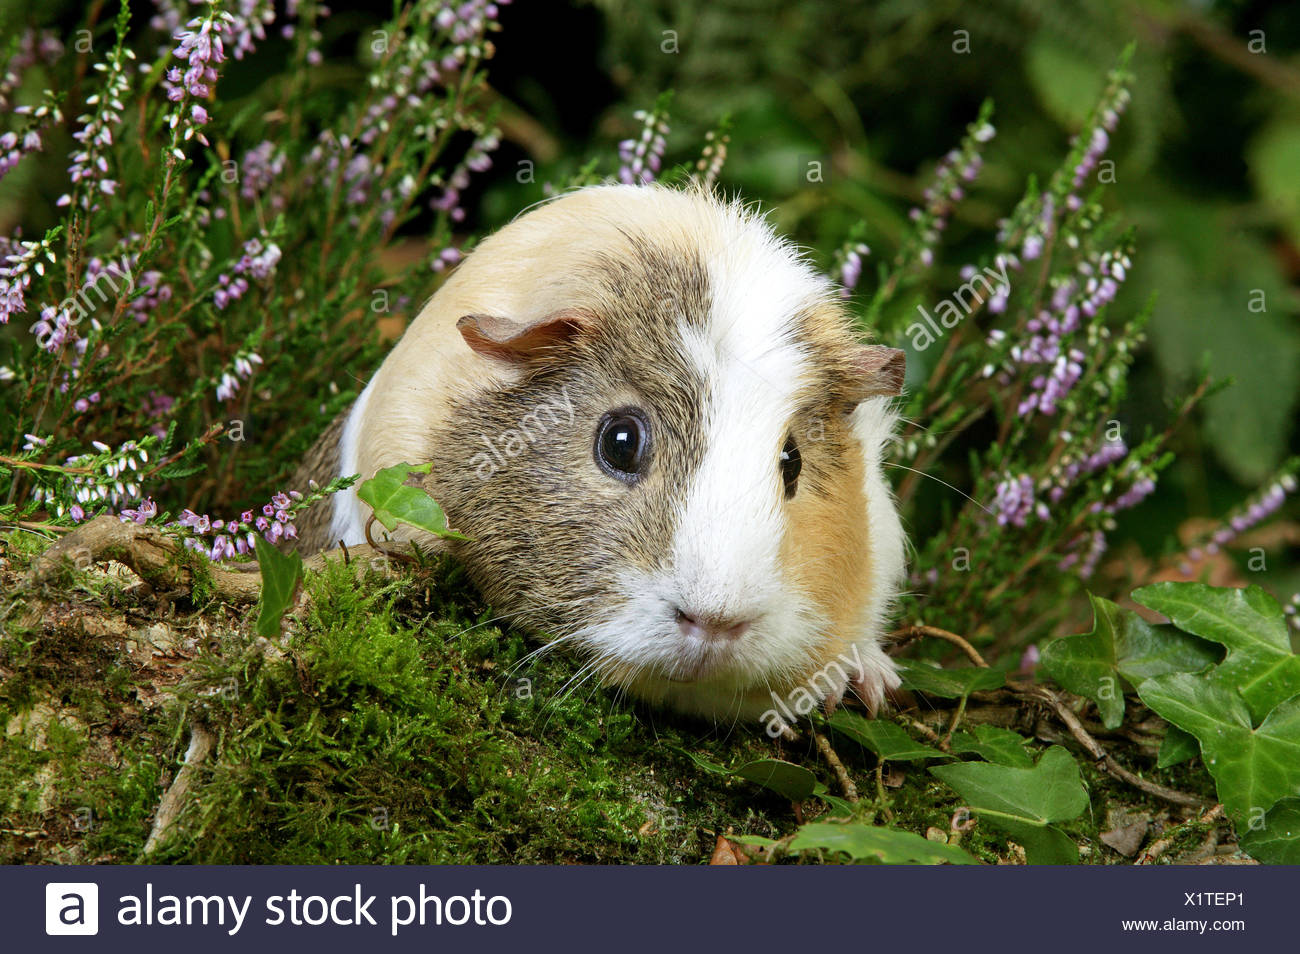 Guinea Pig, cavia porcellus, Adult in Heaters - Stock Image